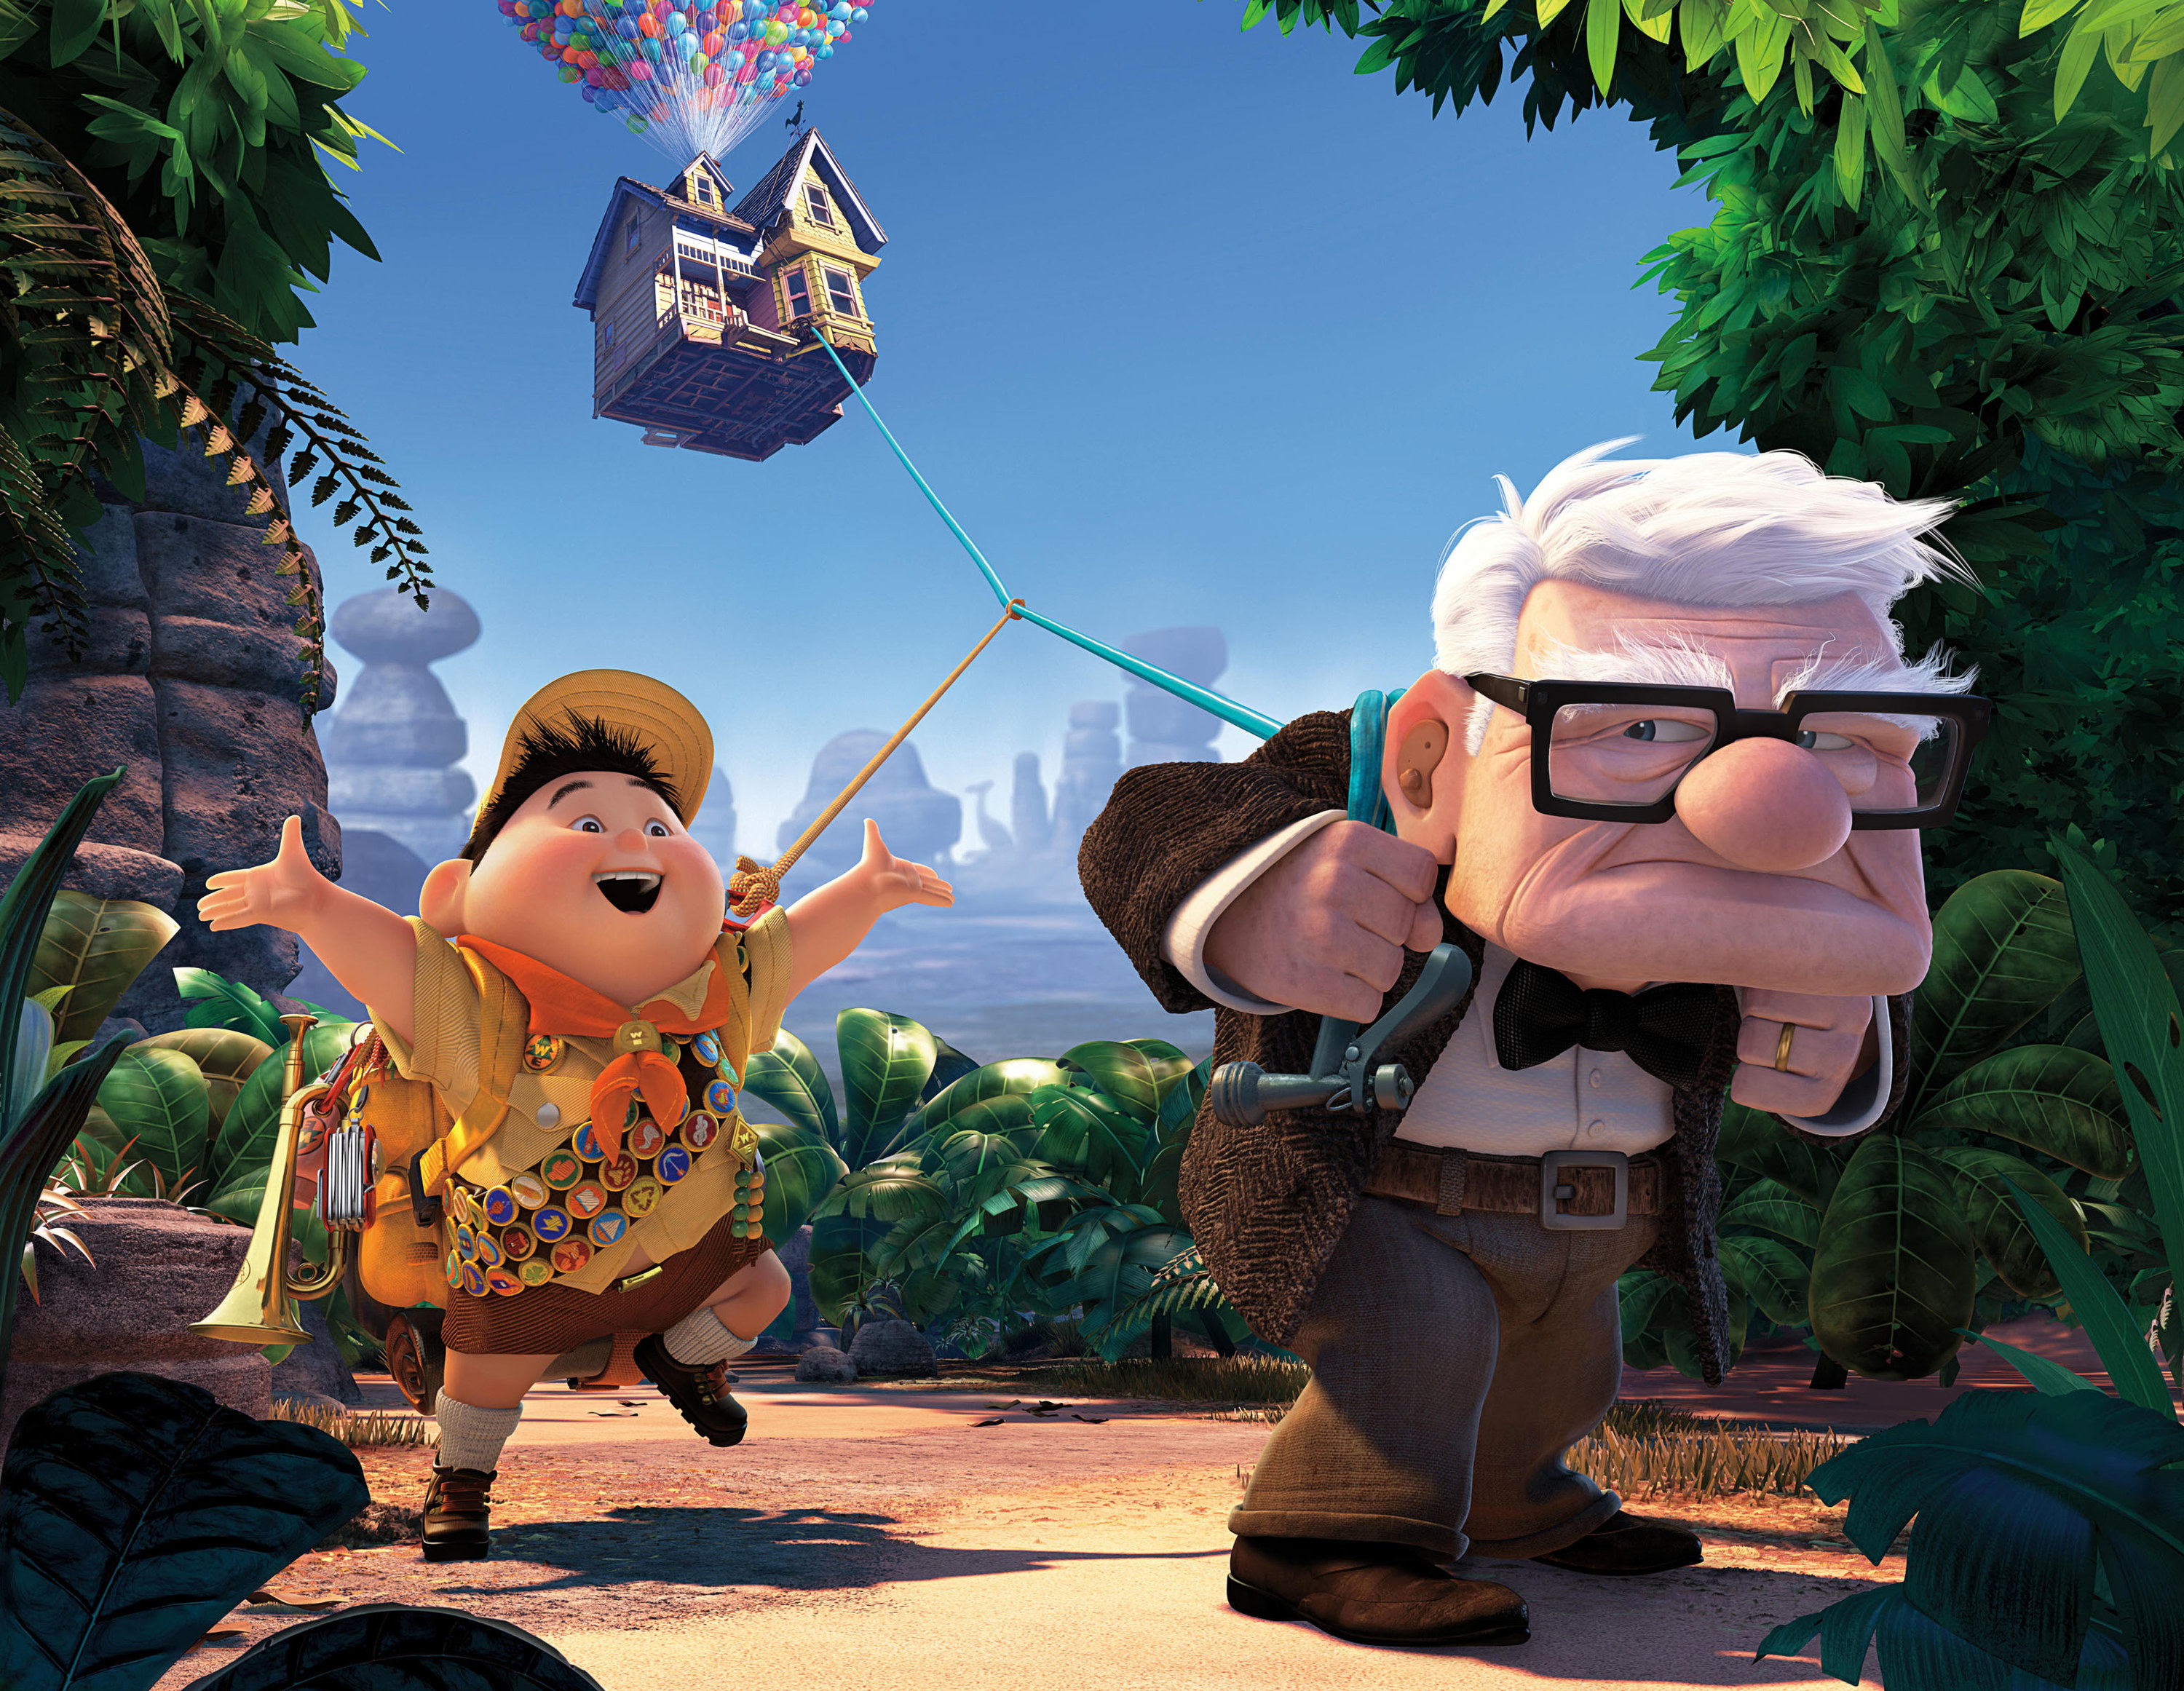 Russell singing and walking behind Carl Fredricksen who is pulling his house attached on a string